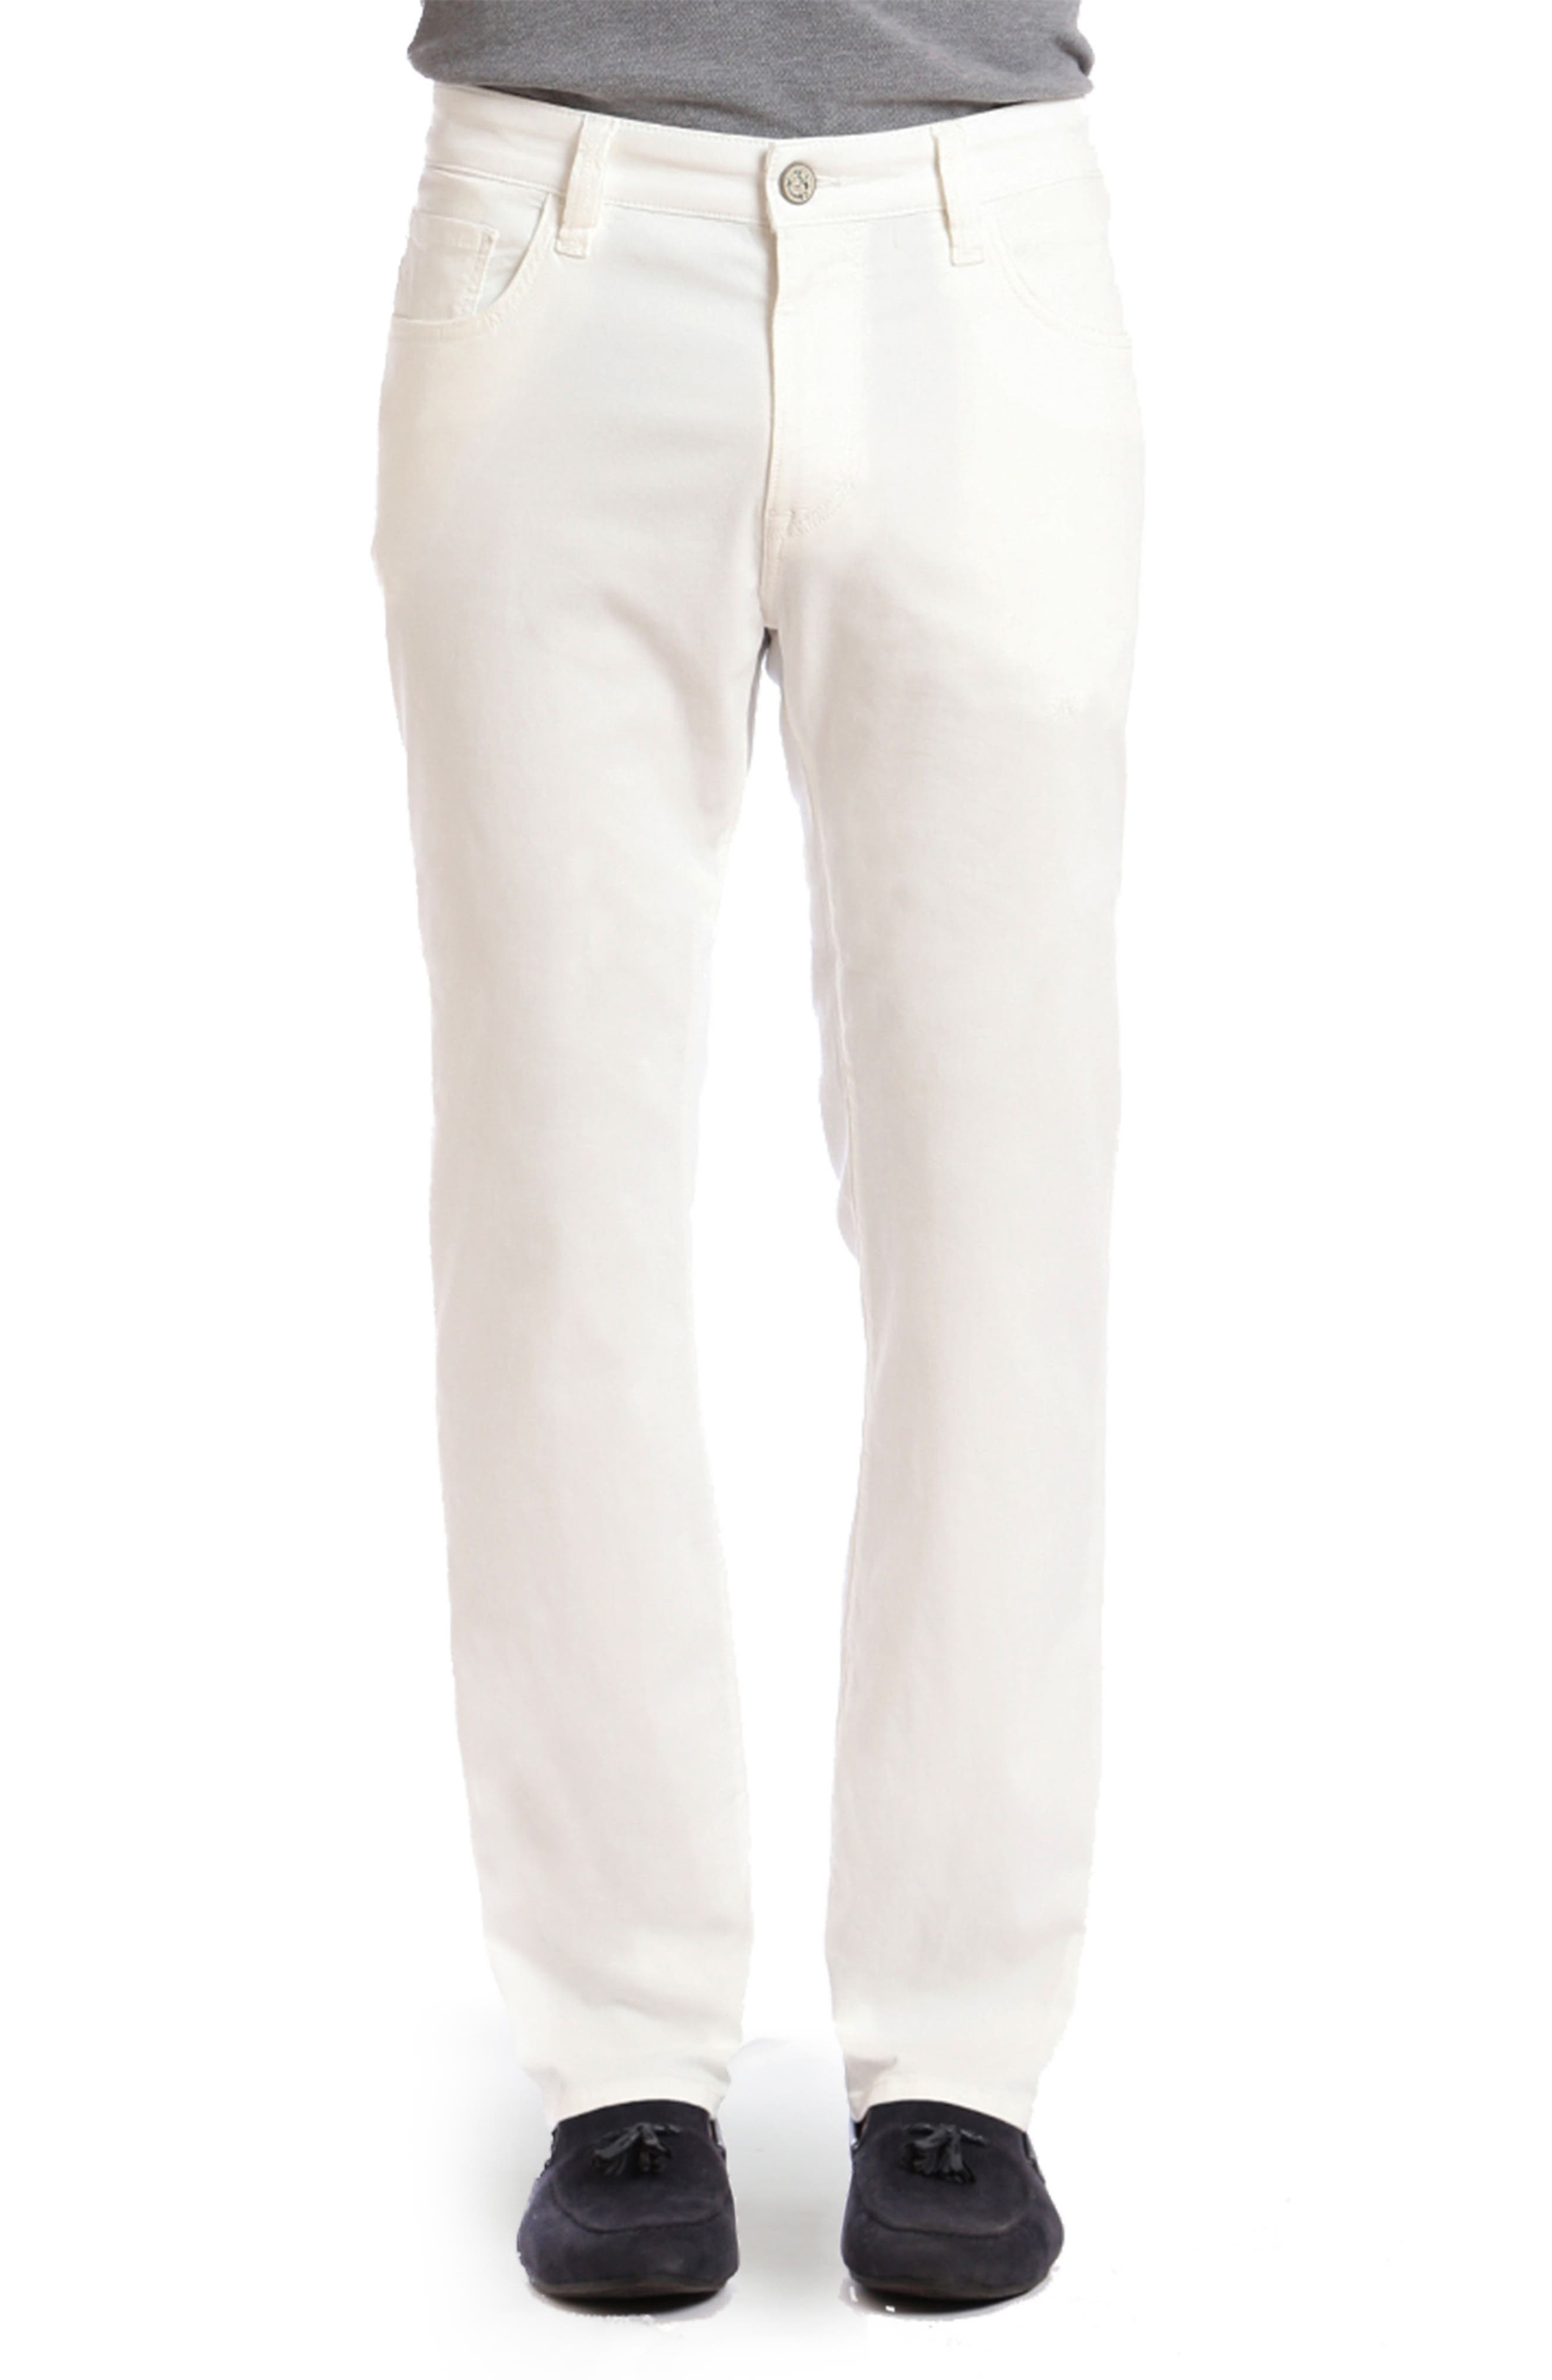 Charisma Relaxed Fit Jeans,                             Main thumbnail 1, color,                             NATURAL FINE TWILL